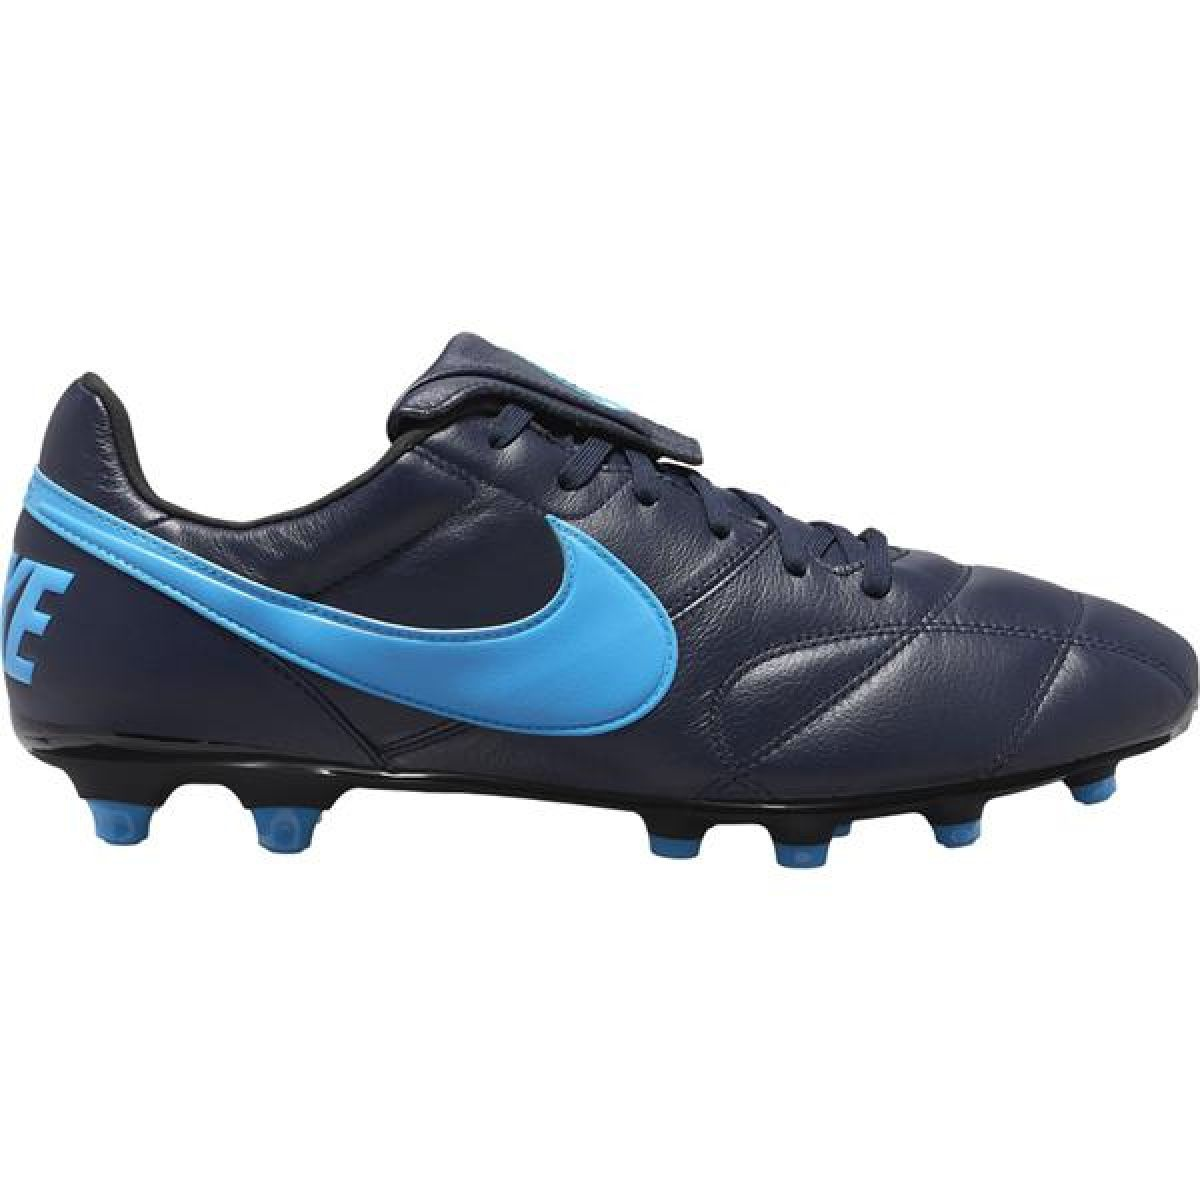 Details about Football shoes Nike The Premier Ii Fg M 917803 440 navy navy